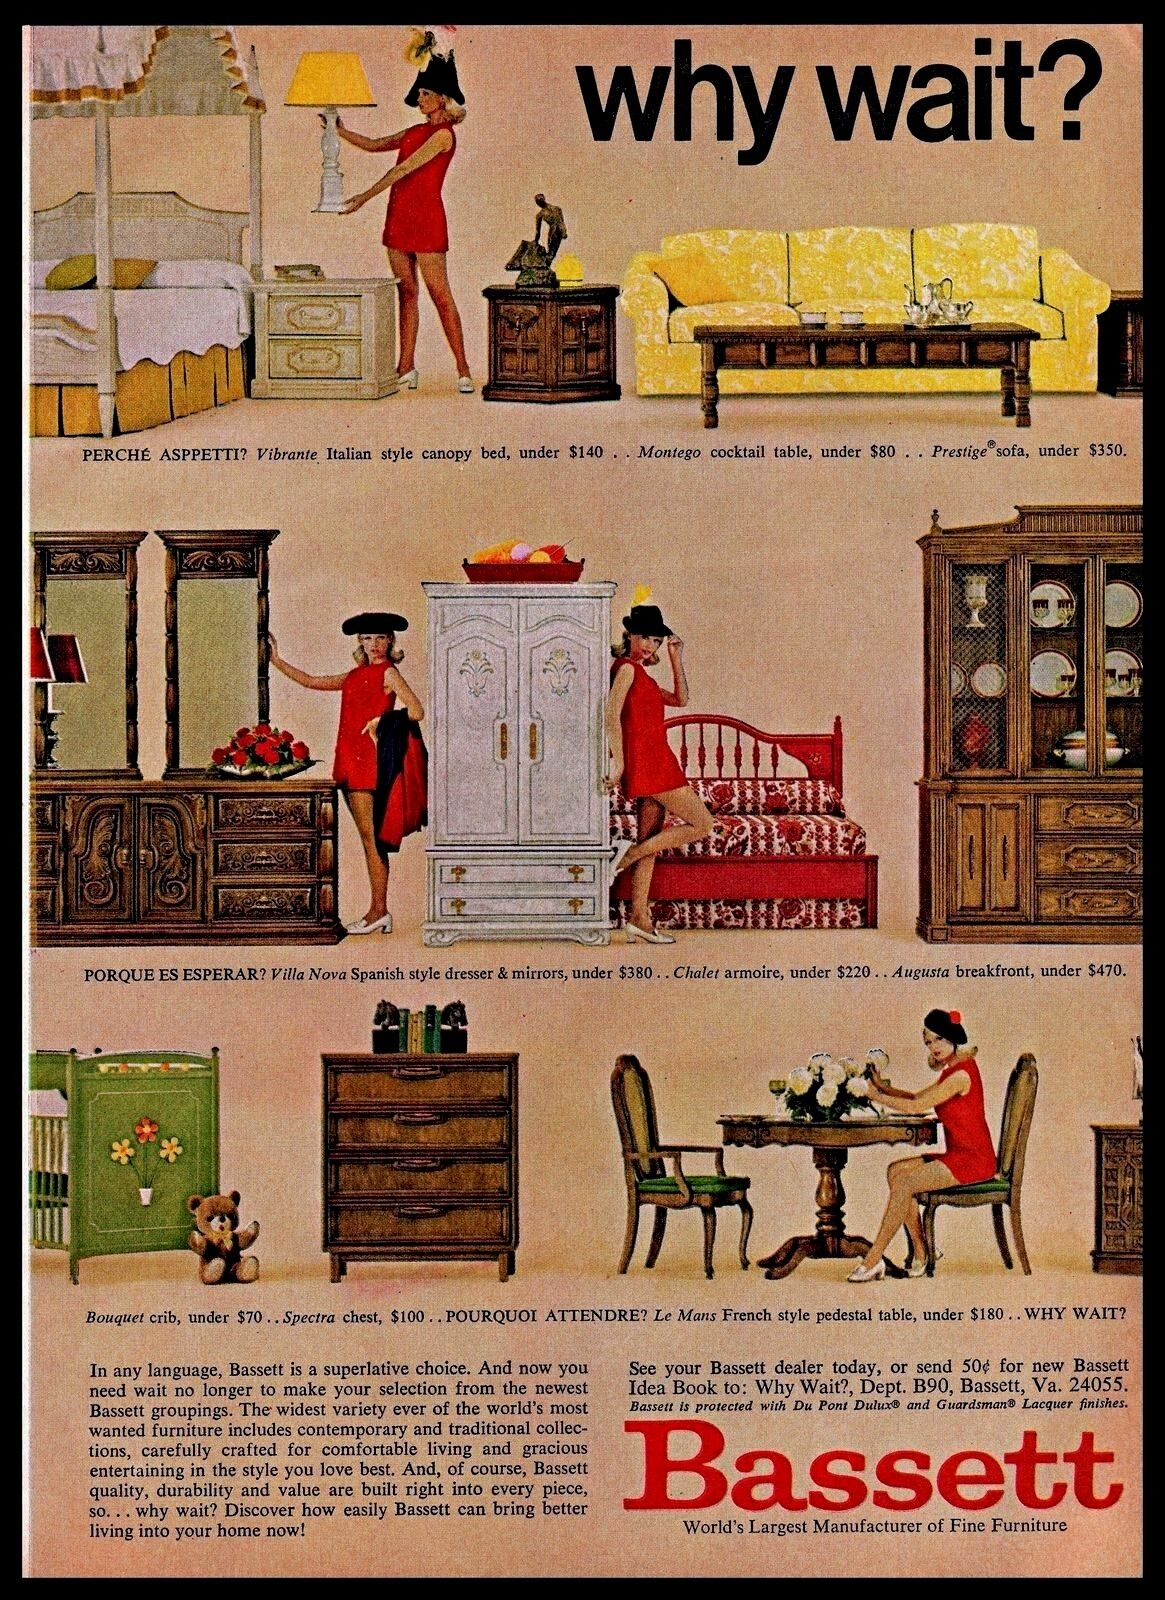 1969 Bett Furniture Home Decor Lady Modeling Red Dress Vintage ...  S Home Furniture on 1960s ads, 1960s graphics, 1960s wall decorations, 1960s chair, 1960s carpeting, 1960s shoes, 1960s living room, 1960s wood, 1960s photography, 1960s vintage fabric, 1960s mad men style, 1960s produce, 1960s cake decorating, 1960s prom gowns, 1960s leather couch, 1960s dolls, 1960s table centerpieces, 1960s fur, 1960s lamps, 1960s coffee tables,